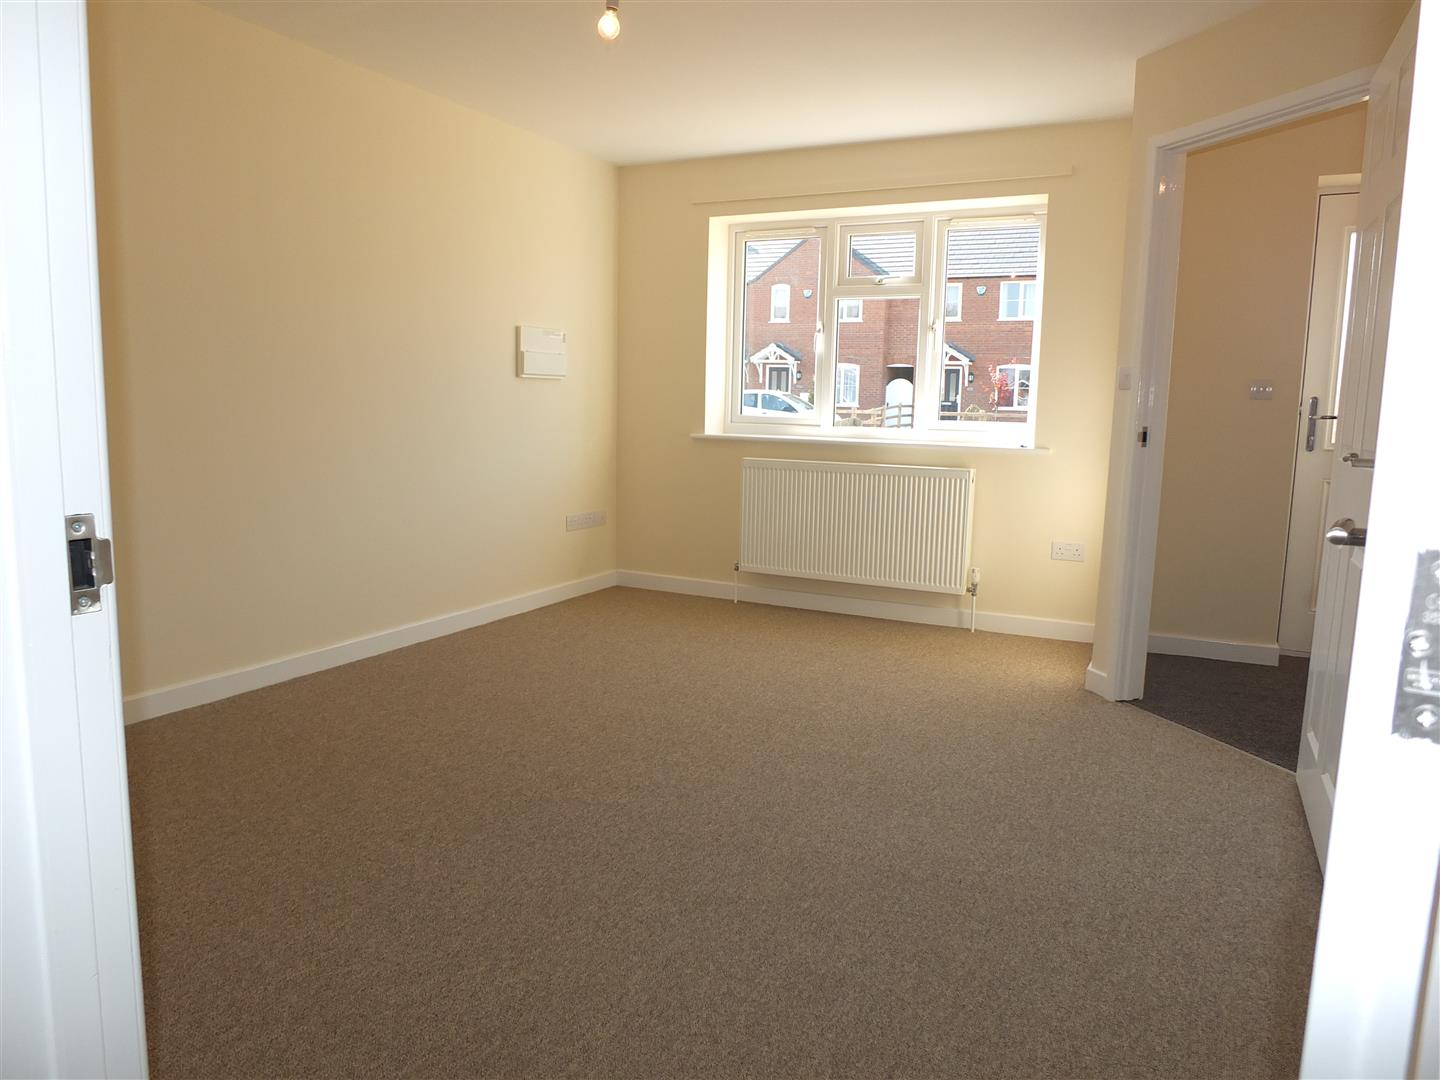 2 bed house to rent in Long Sutton, PE12 9LE 4